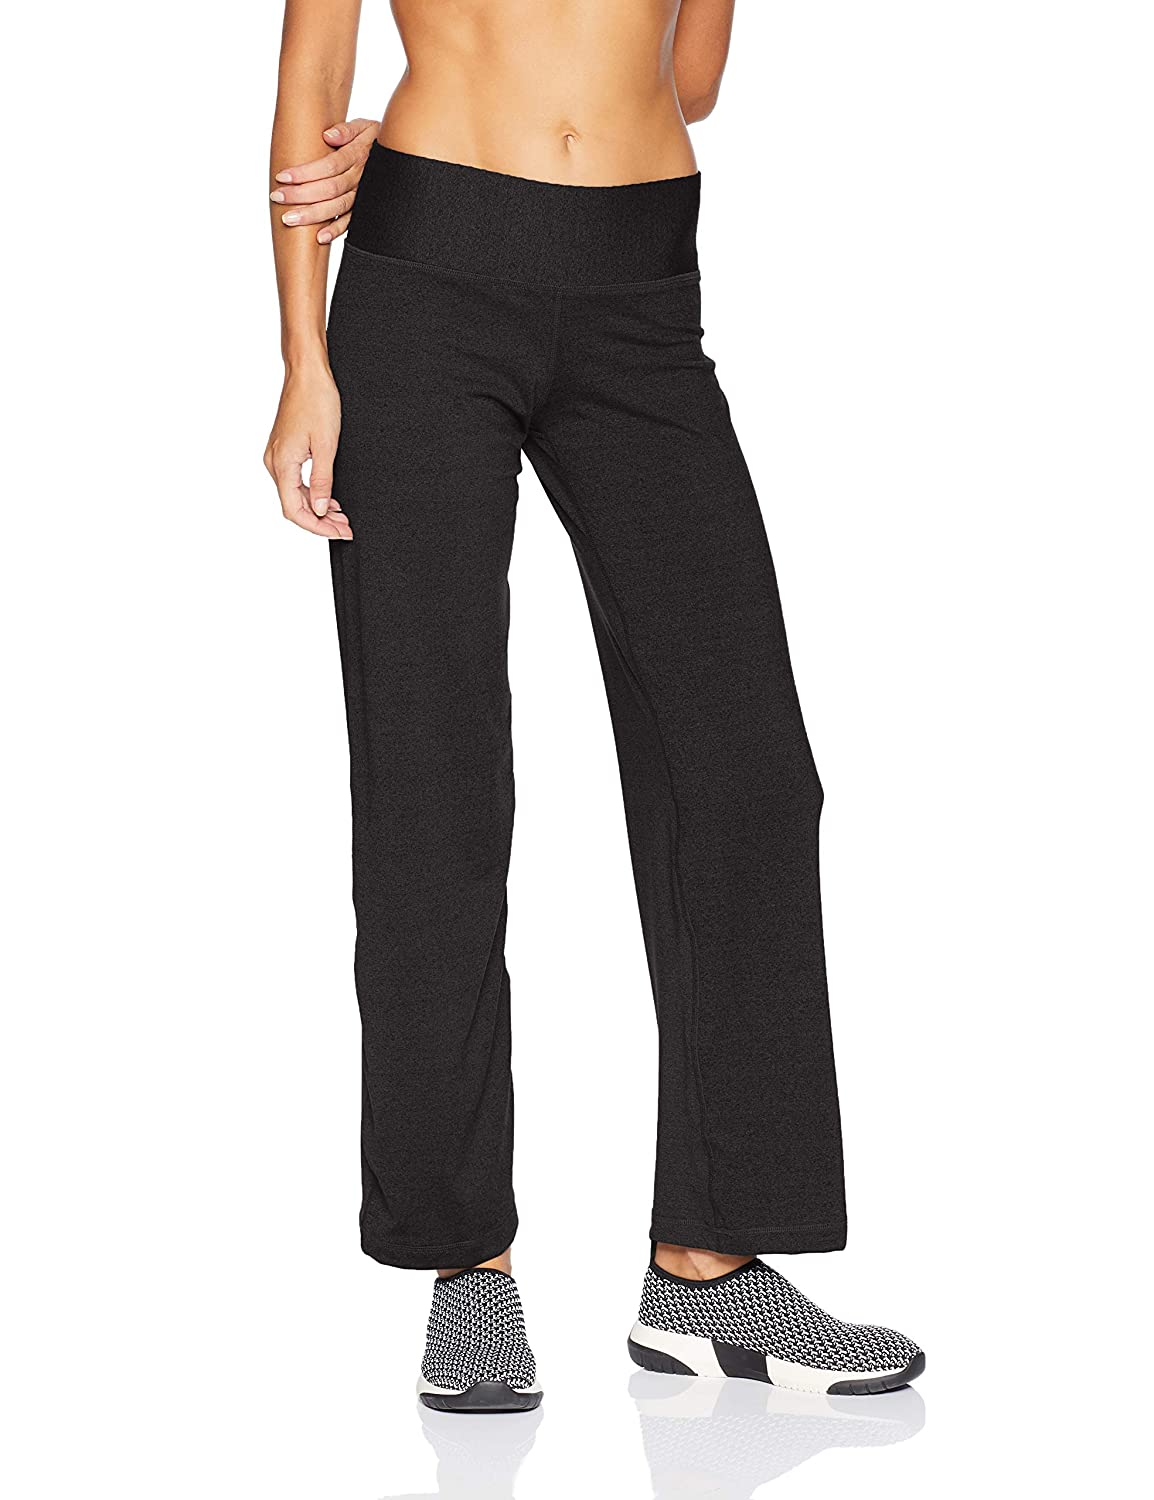 e5605590ce05 Amazon.com  Champion Women s Absolute Semi-fit Pant with SmoothTec    Clothing